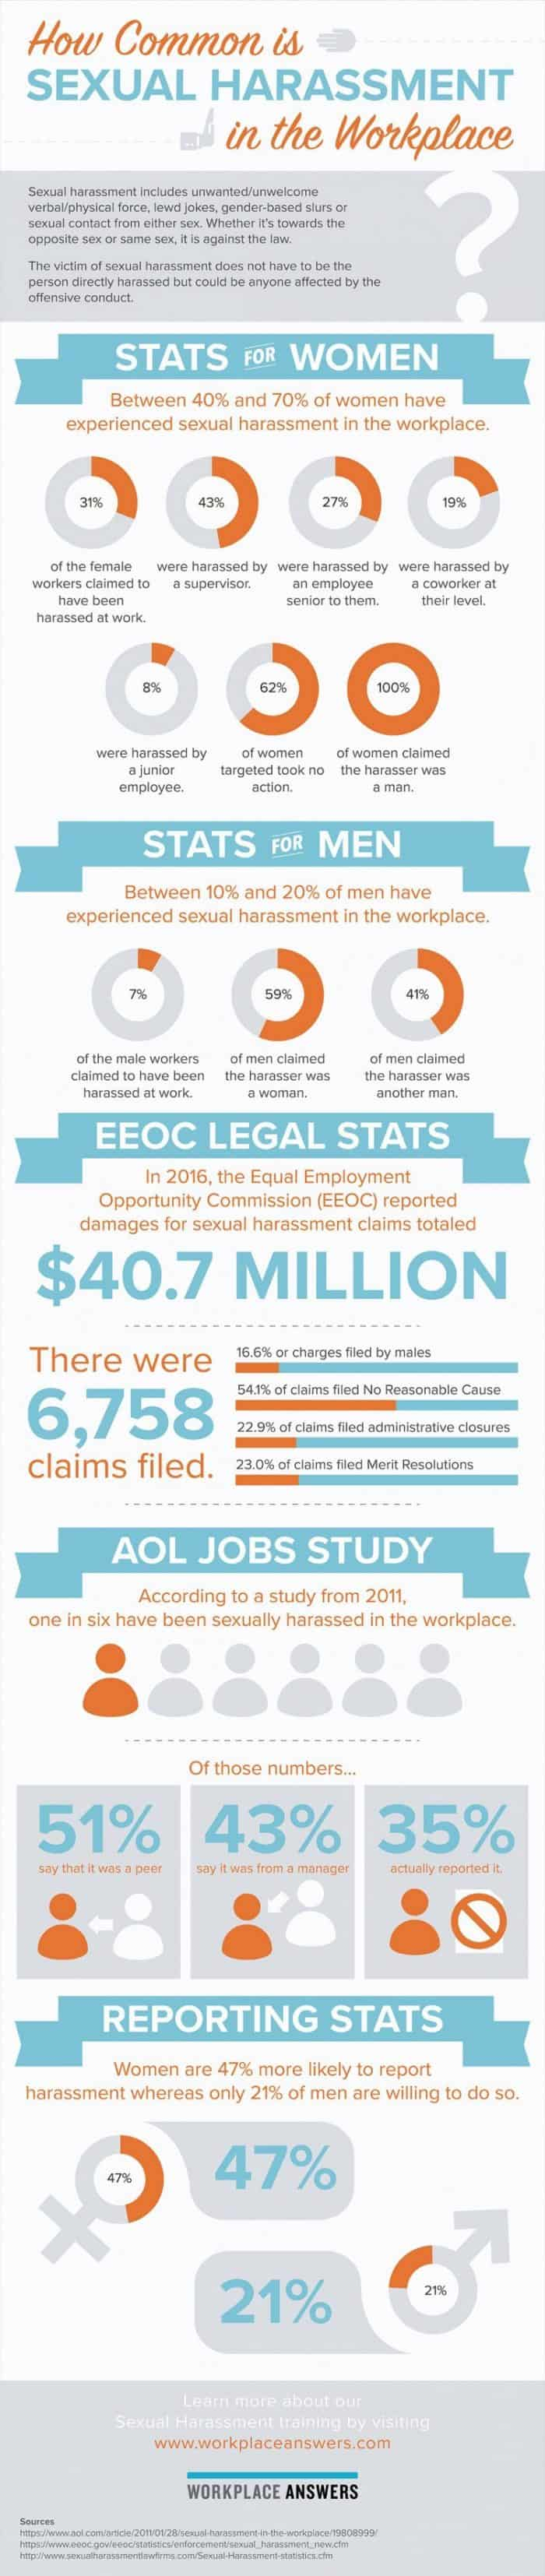 infographic explores how common sexual harassment in the workplace is, including EEOC claims for 2016